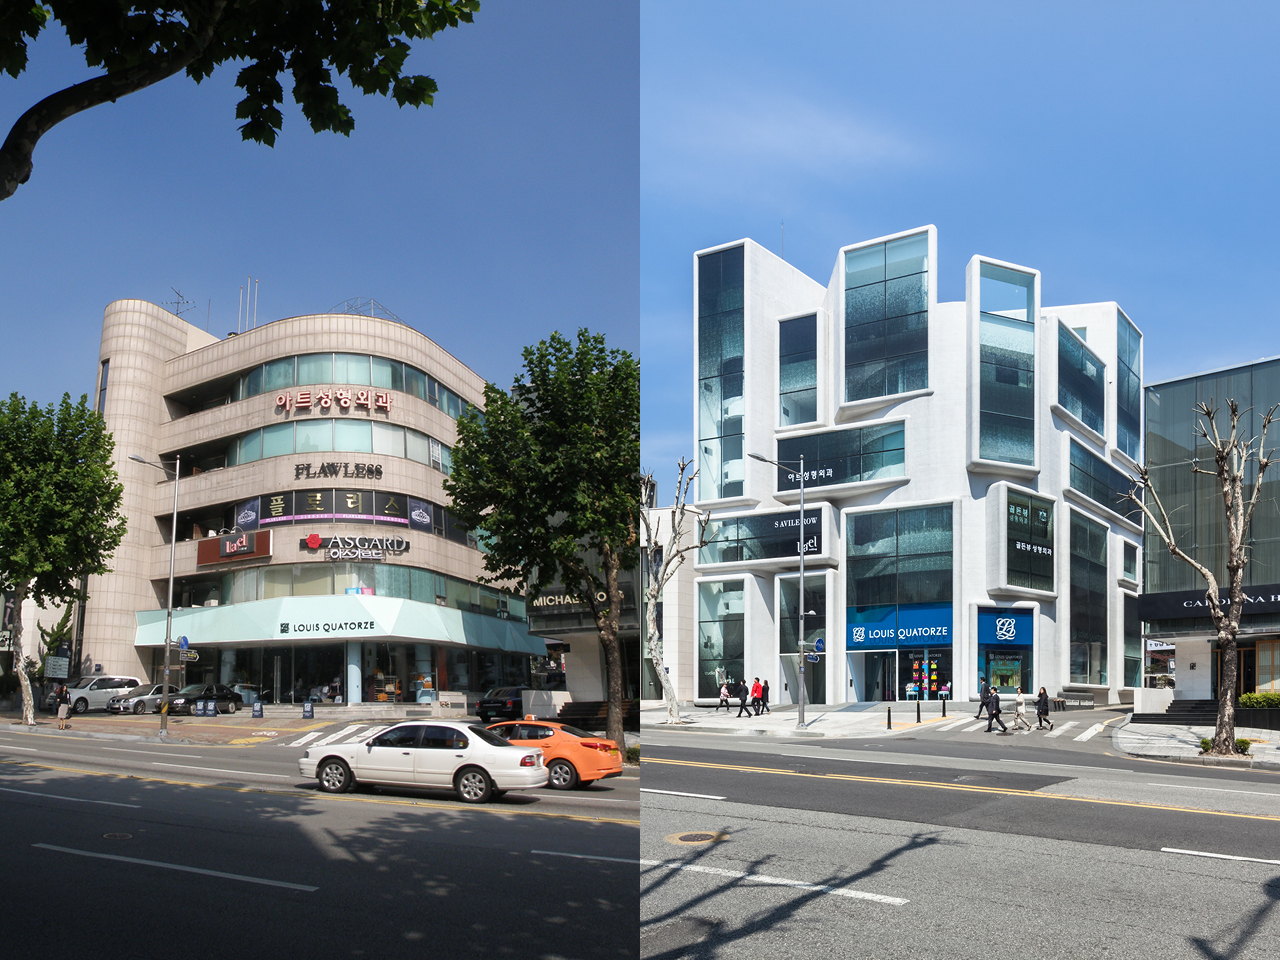 gangnam style: mvrdv completes building transformation in seoul, South Korea